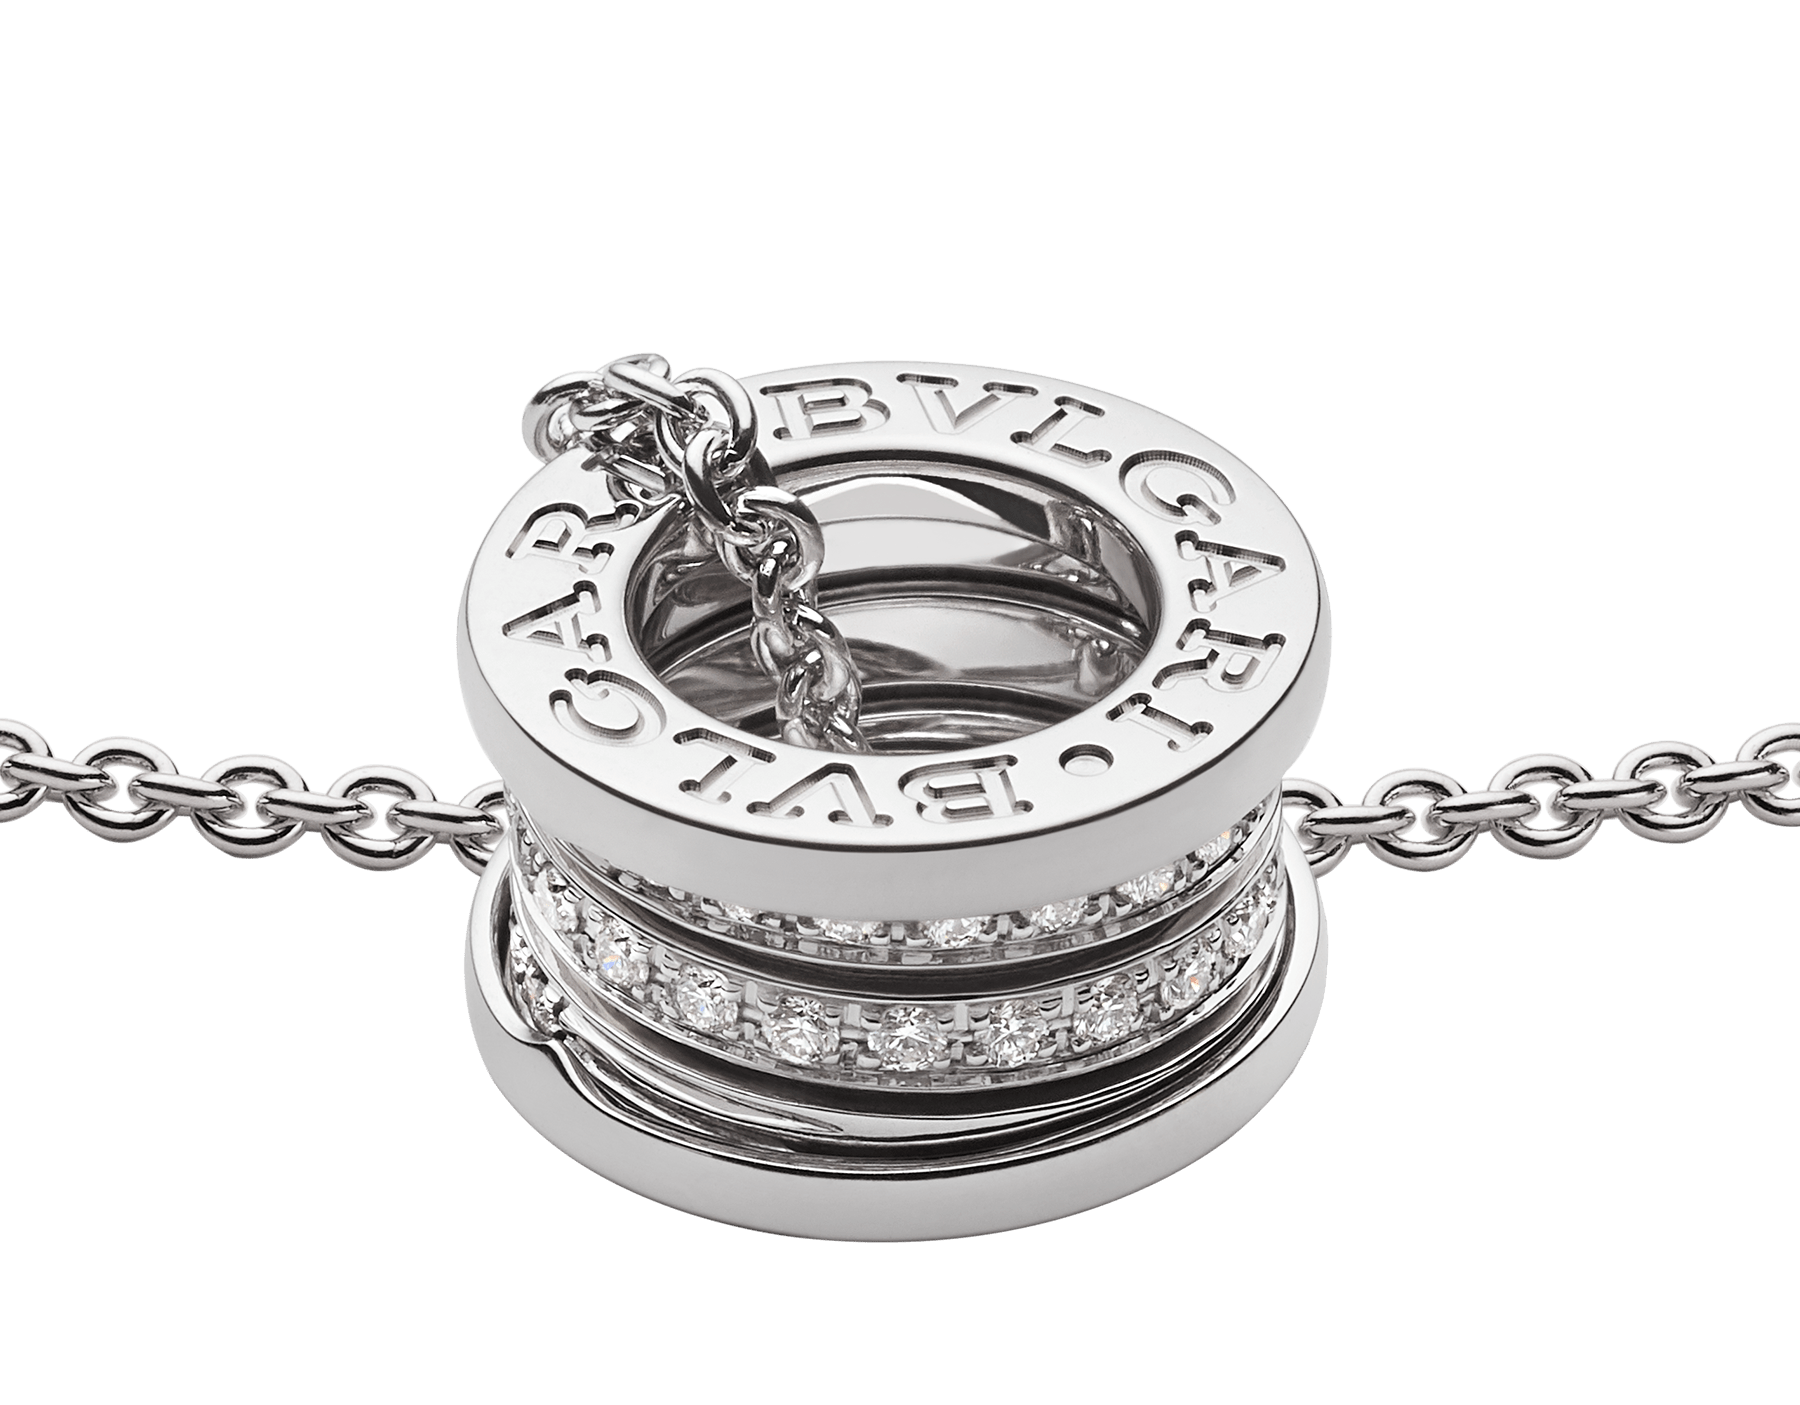 B.zero1 18 kt white gold necklace with small round pendant in 18kt white gold, set with pavé diamonds on the spiral. 352816 image 3